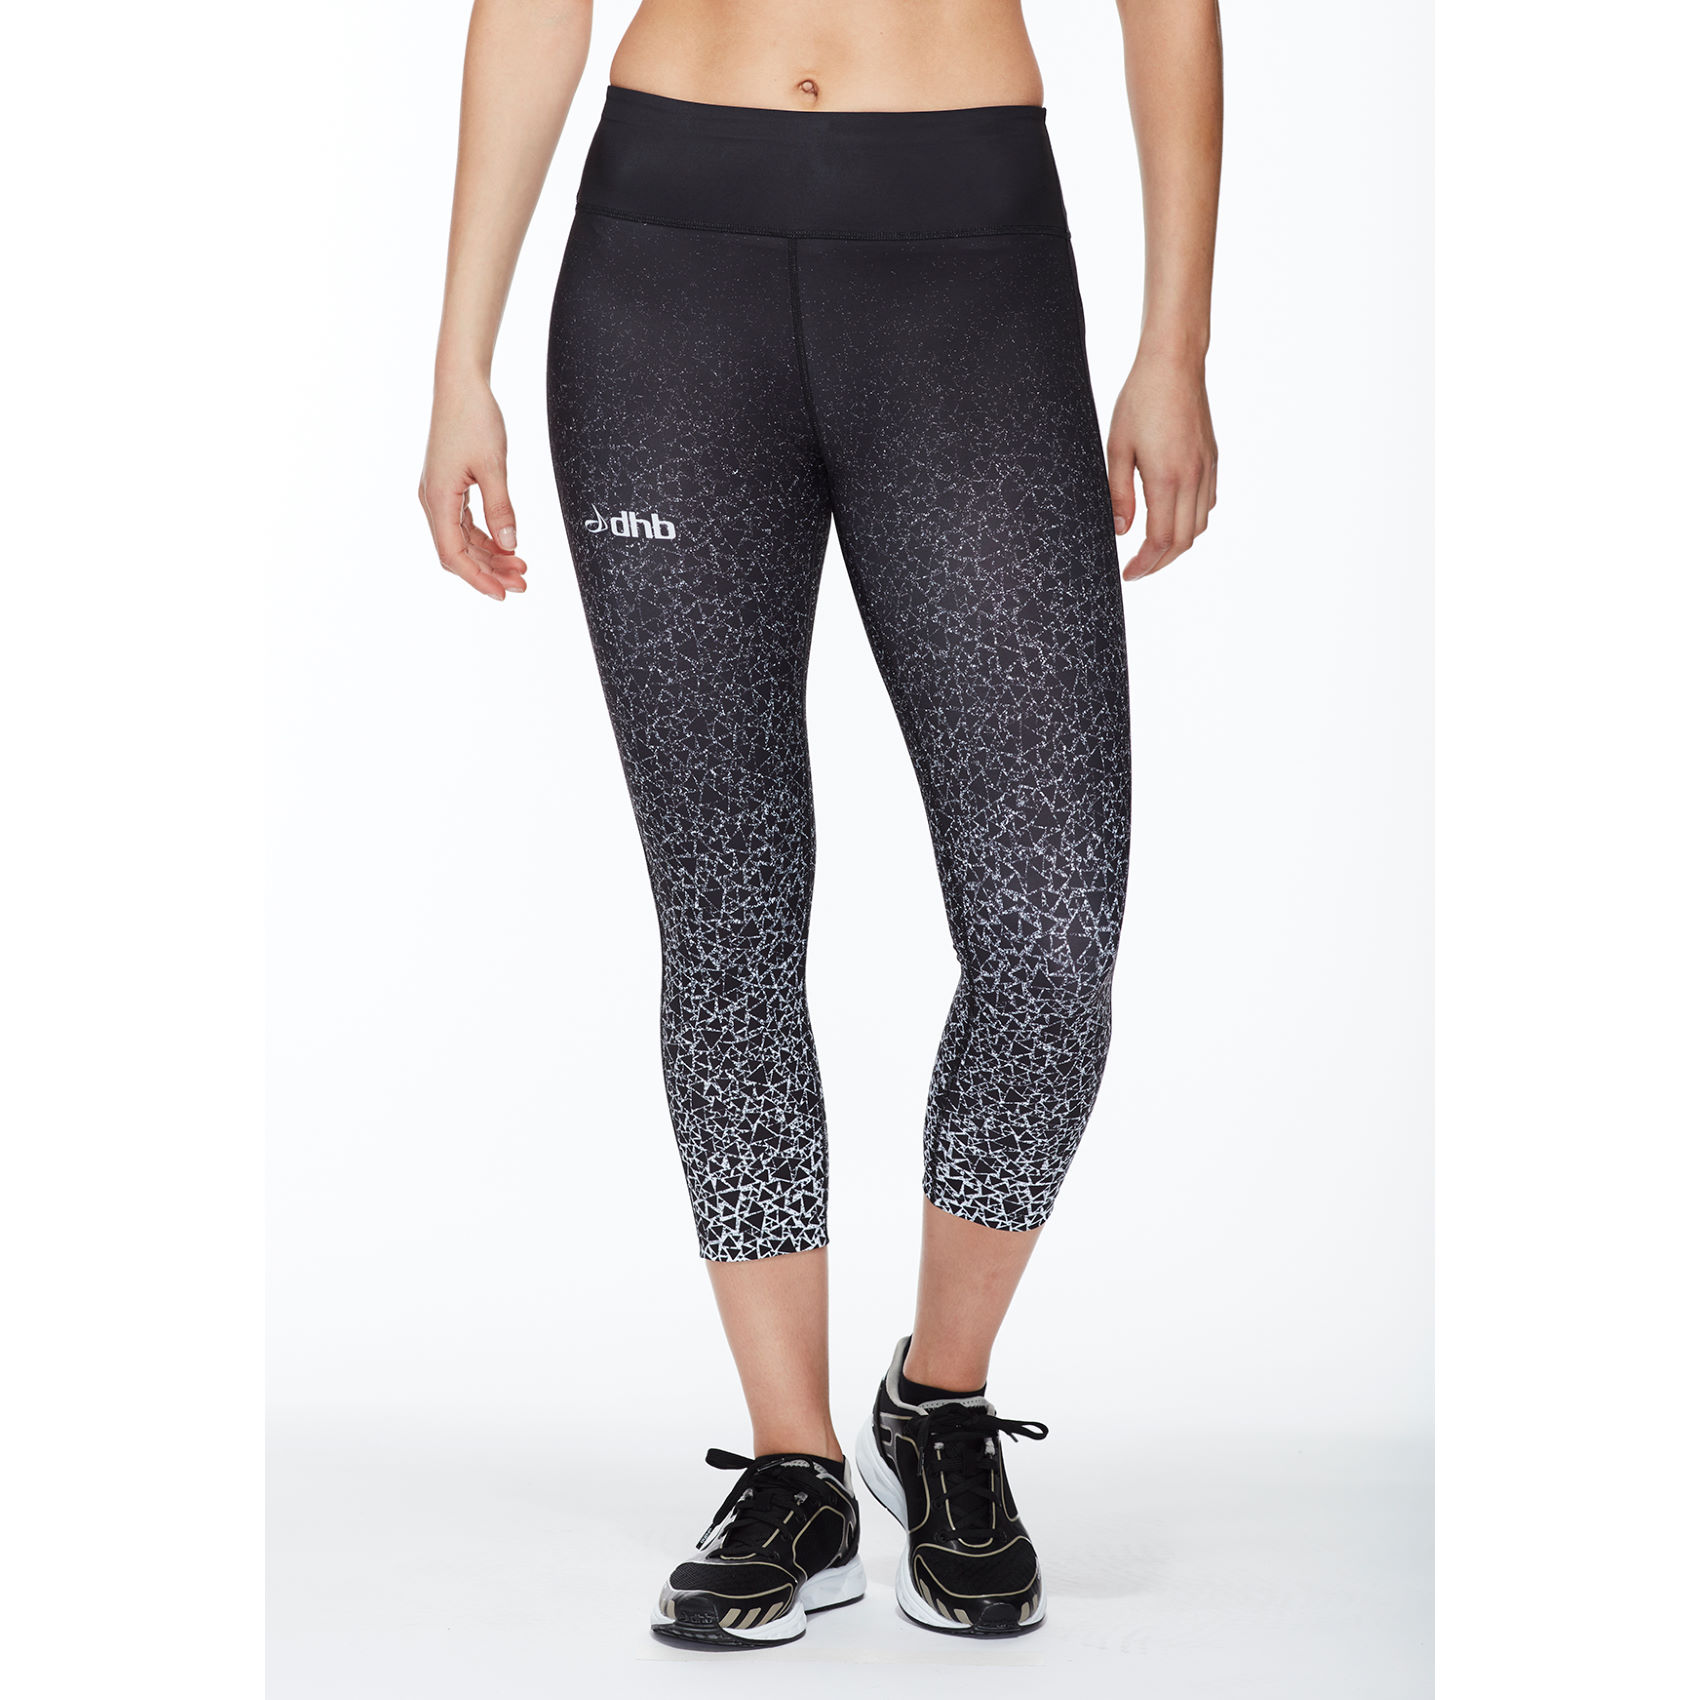 Shop the largest selection of Running Shop at the web's most popular swim shop. Free 24/7 Customer Support· Low Price Guarantee· Easy Returns· Free Shipping Orders $49+Types: Clothes, Shoes, Gear, Nutrition.